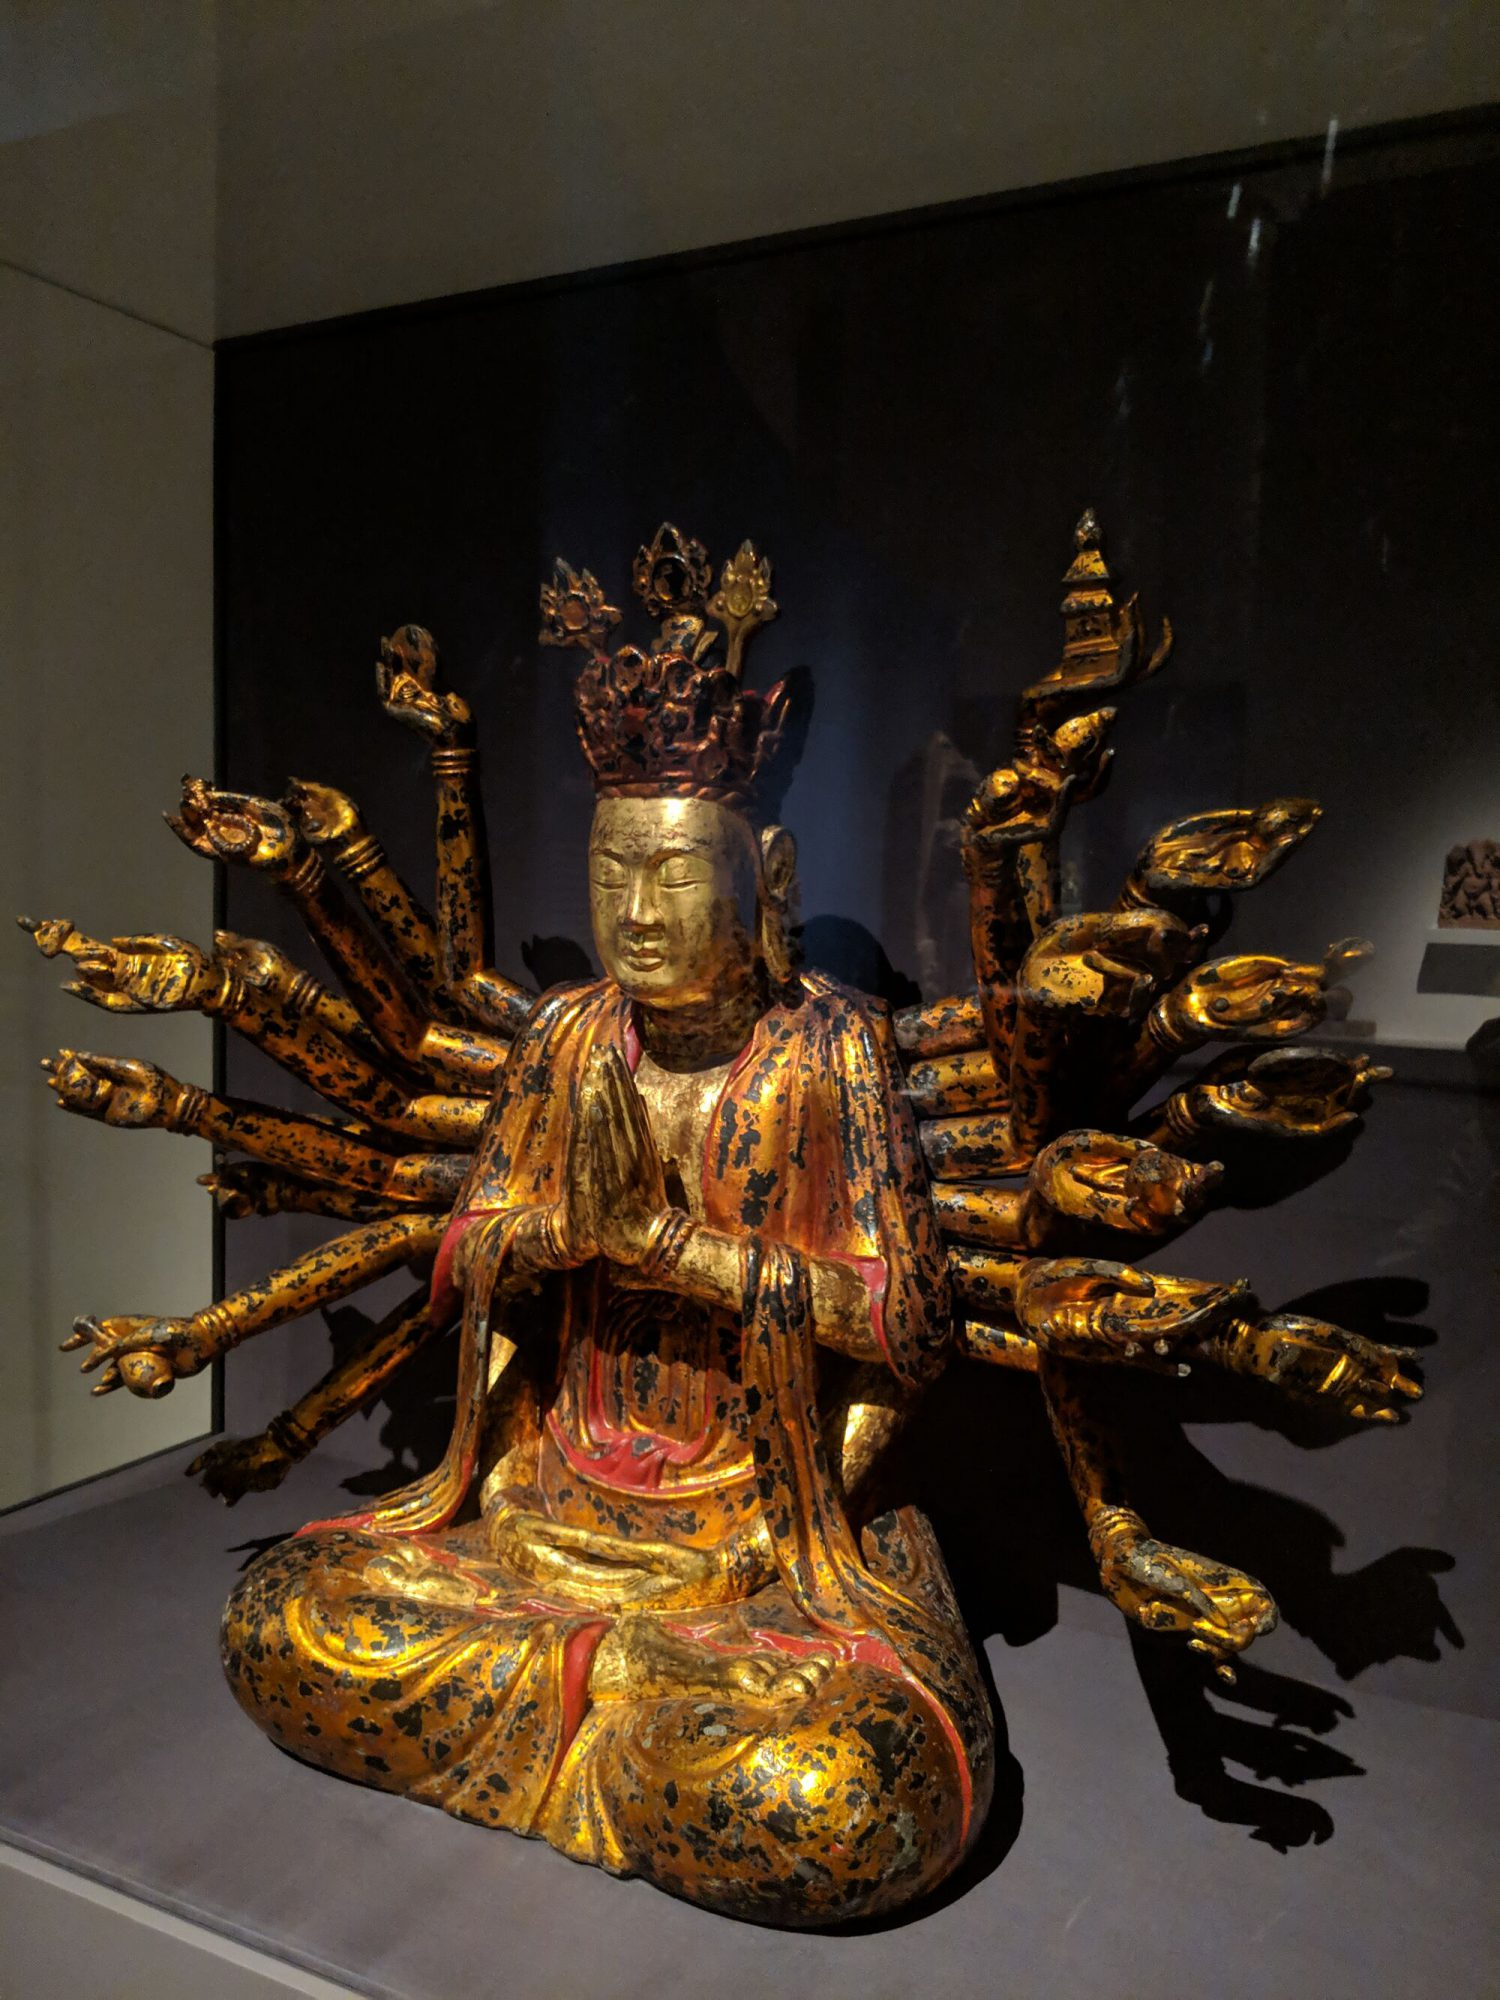 Cosmic form of Quan Am, this multi-armed figure represents Quan Am (Bodhisattva Avalokiteshvara's name in Vietnam) with 1000 hands and 1000 eyes.